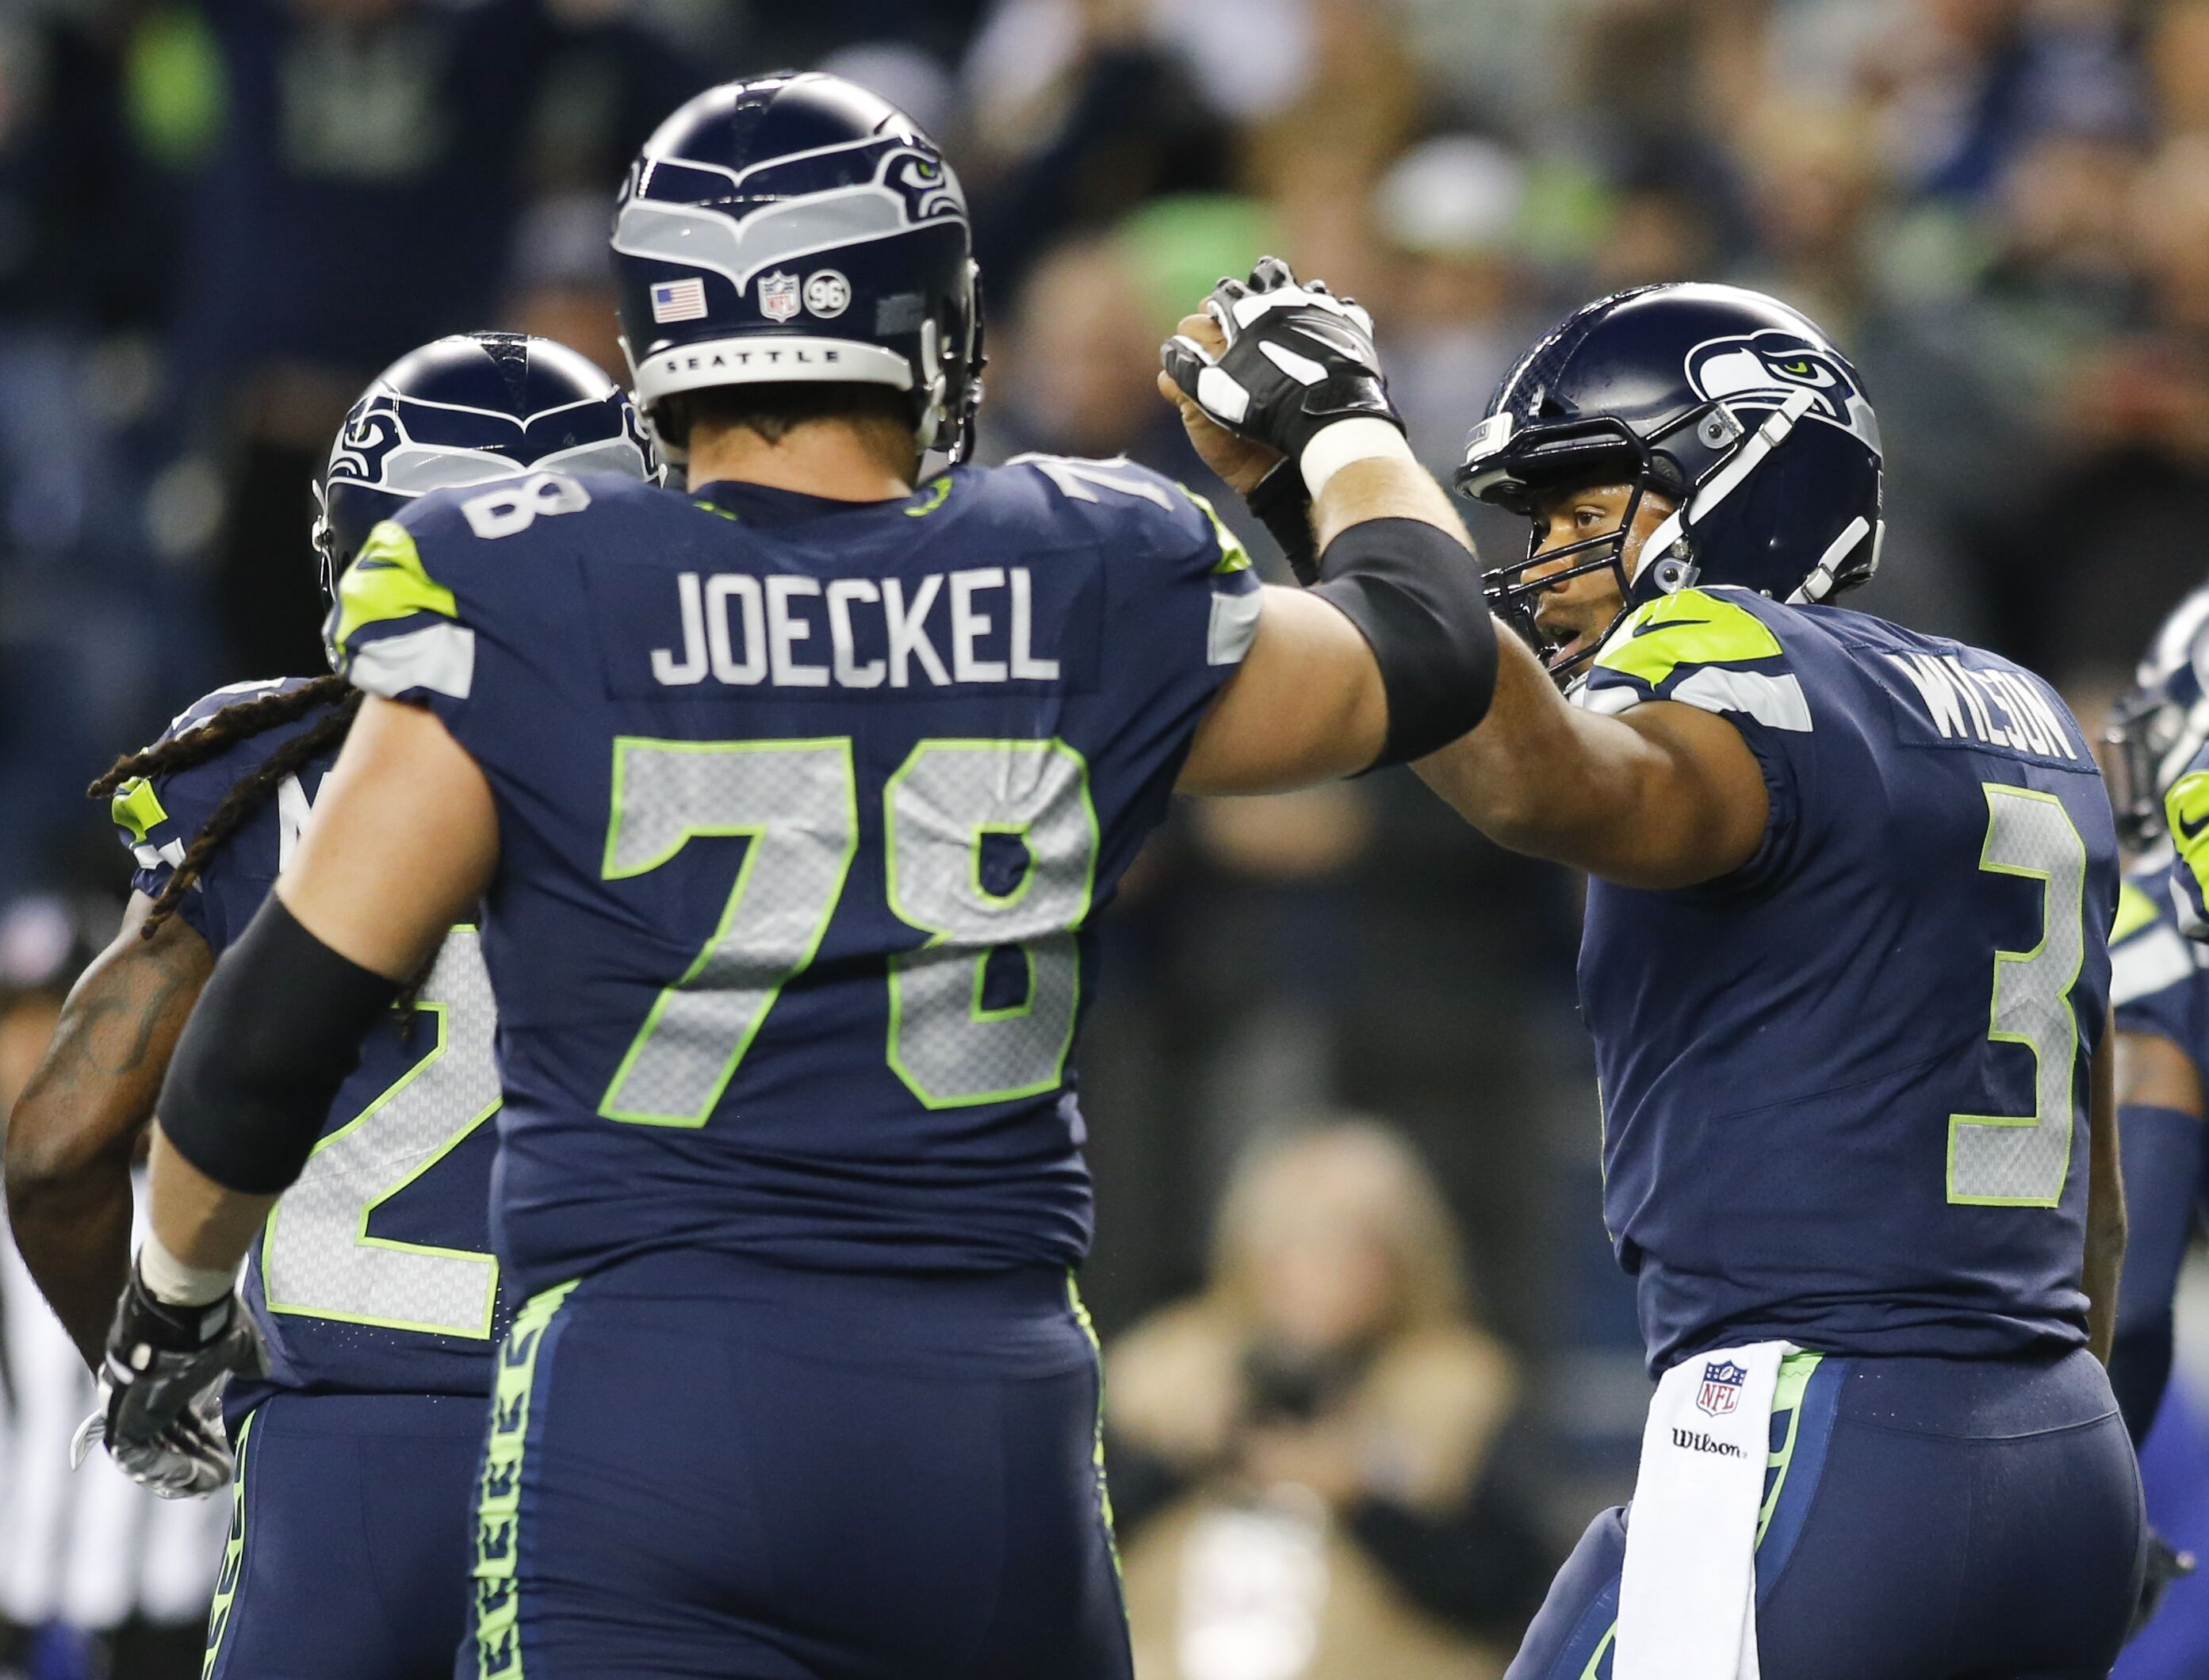 856466872-indianapolis-colts-v-seattle-seahawks.jpg